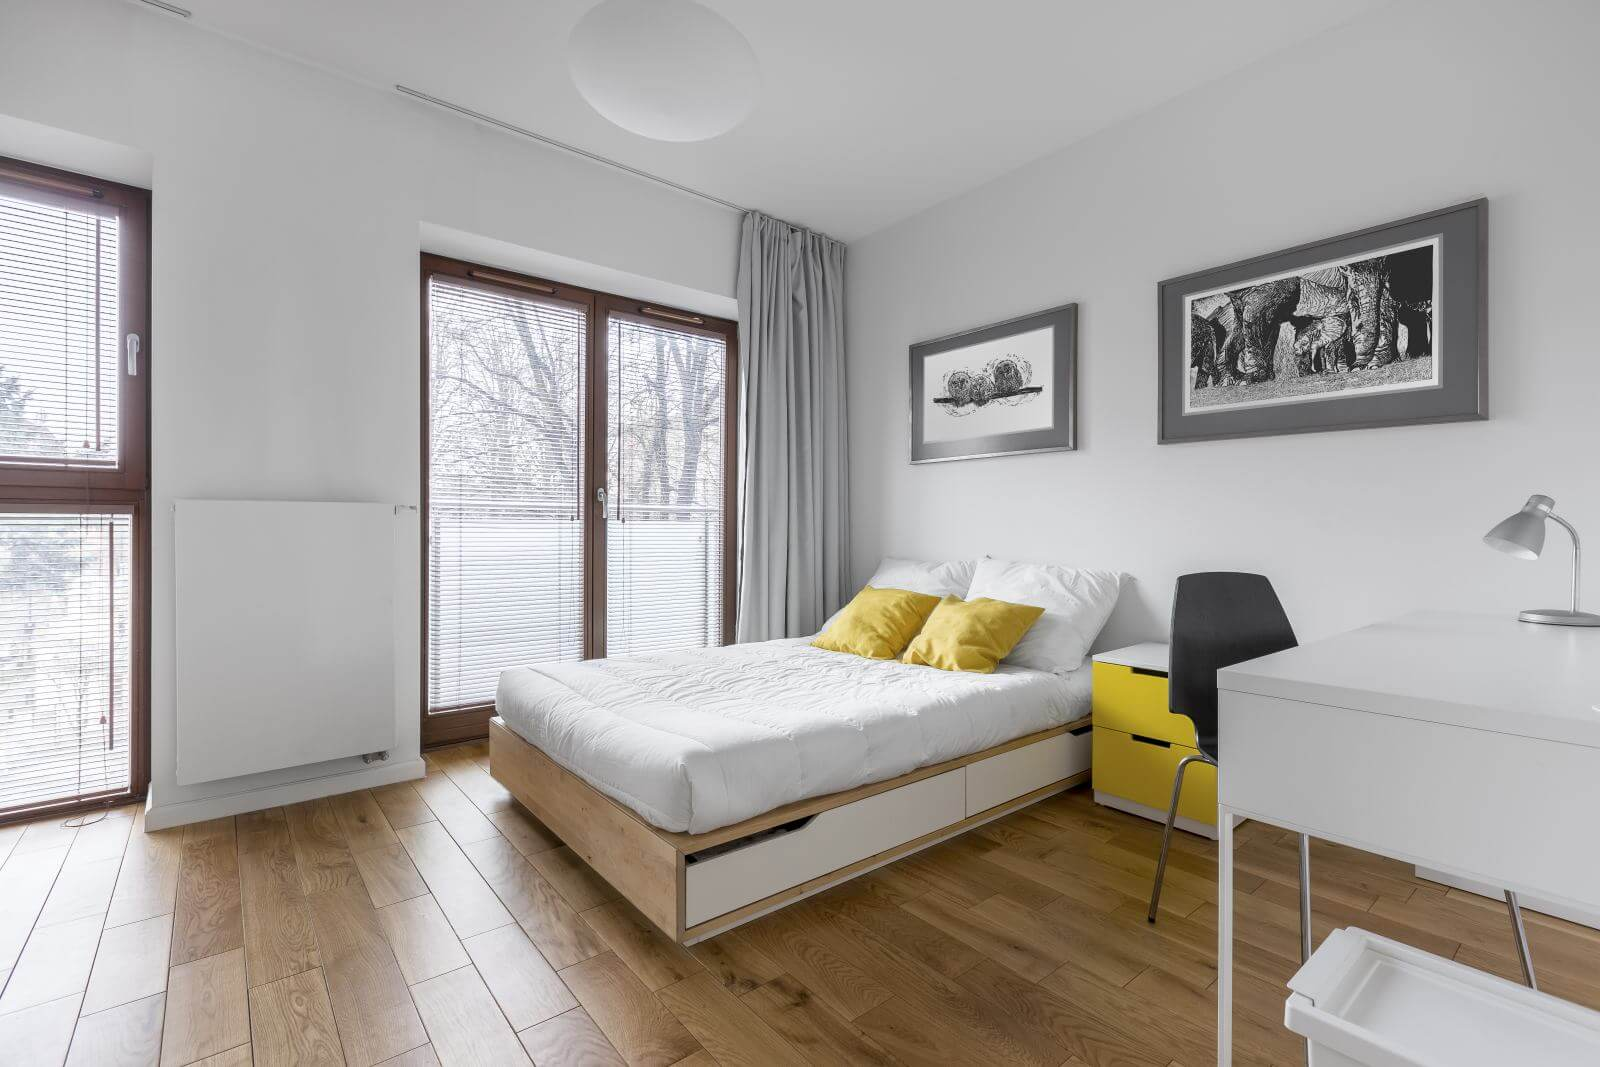 White, multifunctional bedroom with desk, double bed and window